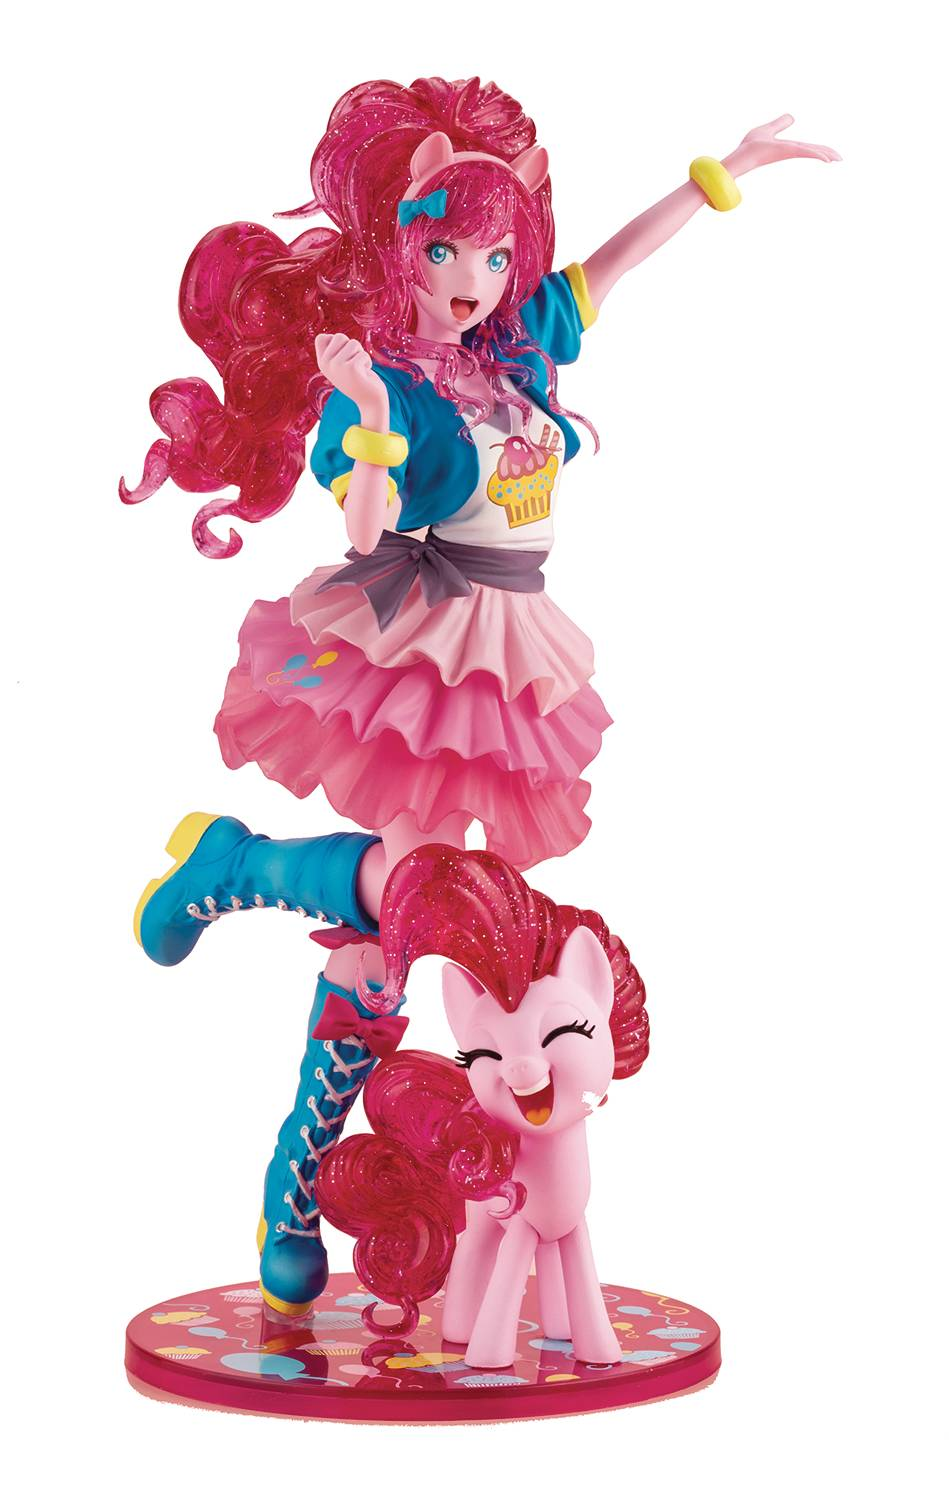 MY LITTLE PONY PINKIE PIE LIMITIED EDITION BISHOUJO STATUE (